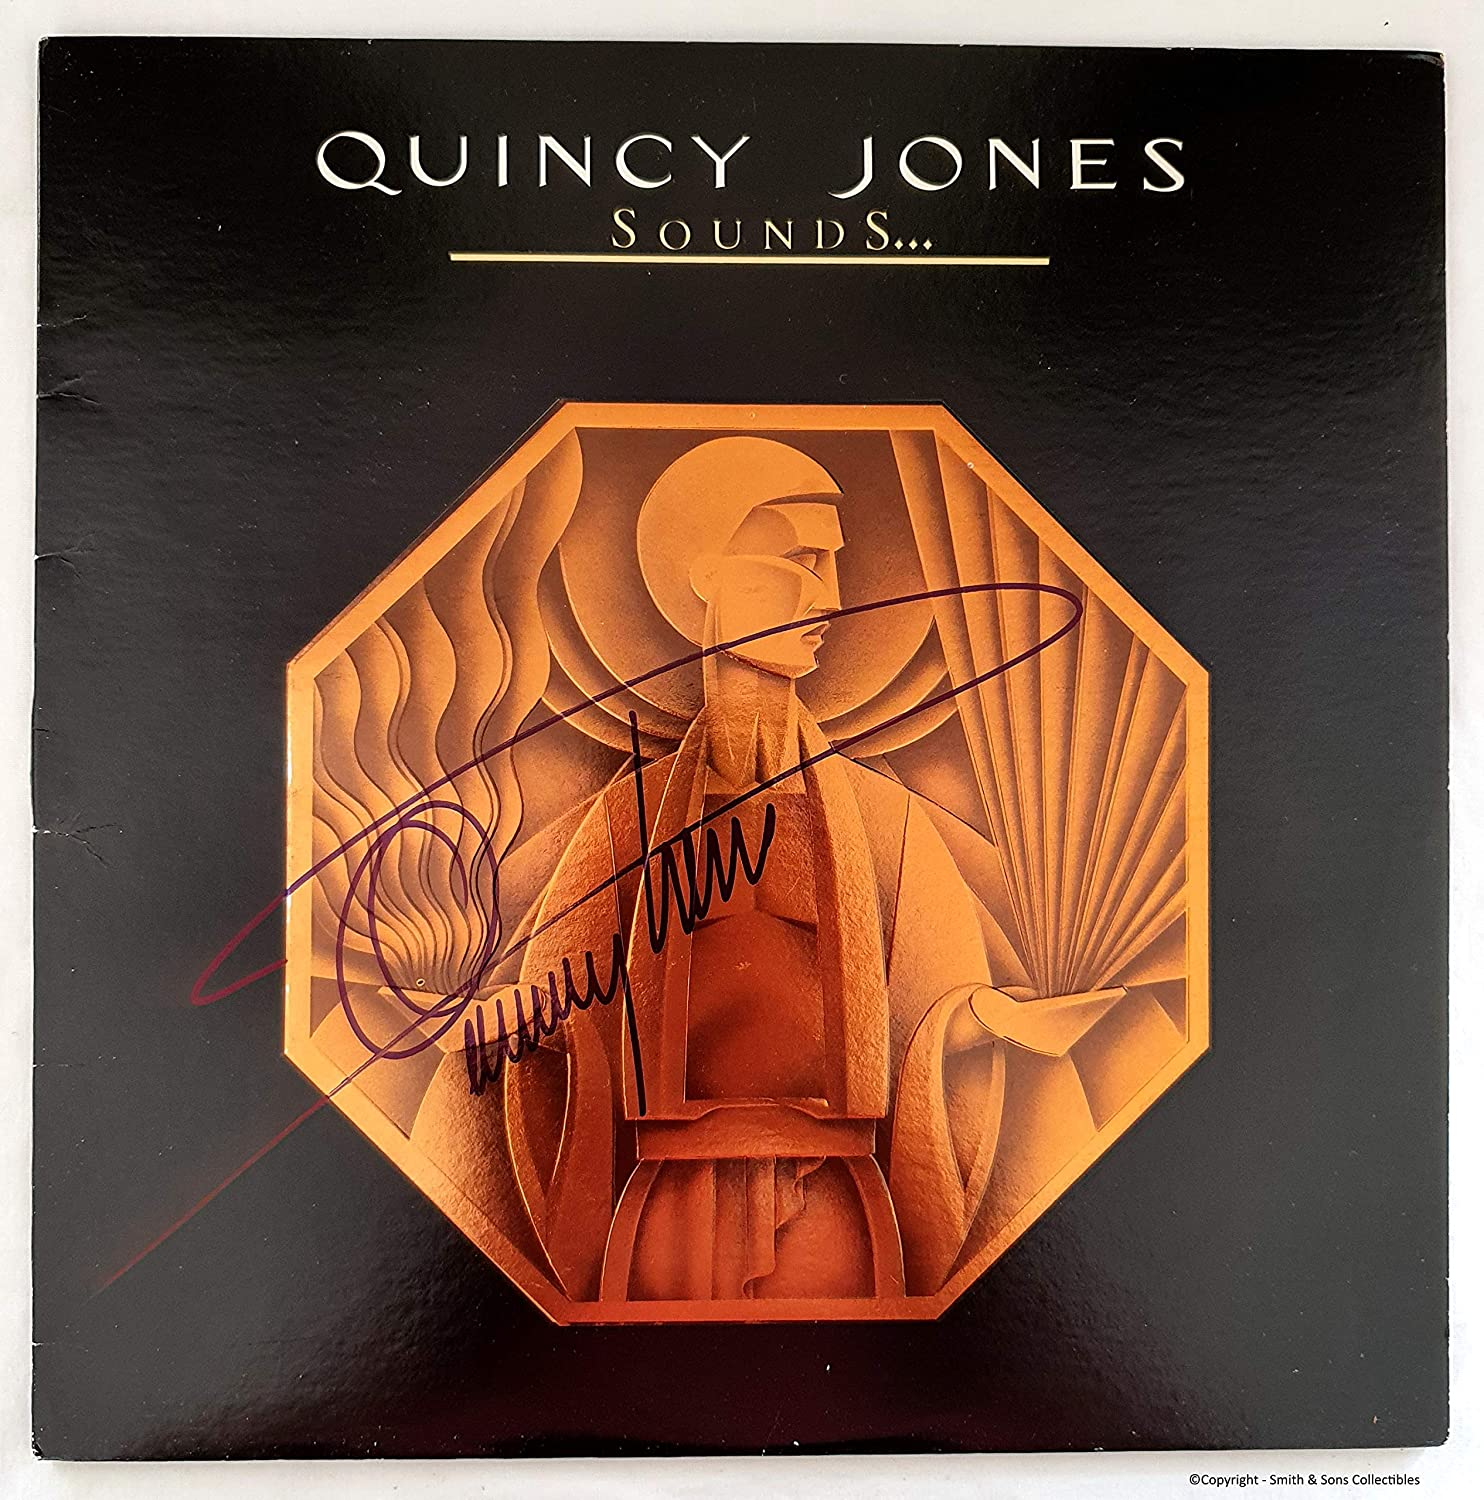 It is very popular Quincy Jones Autographed 'Sounds' Record - LP COA #QJ58894 Indianapolis Mall